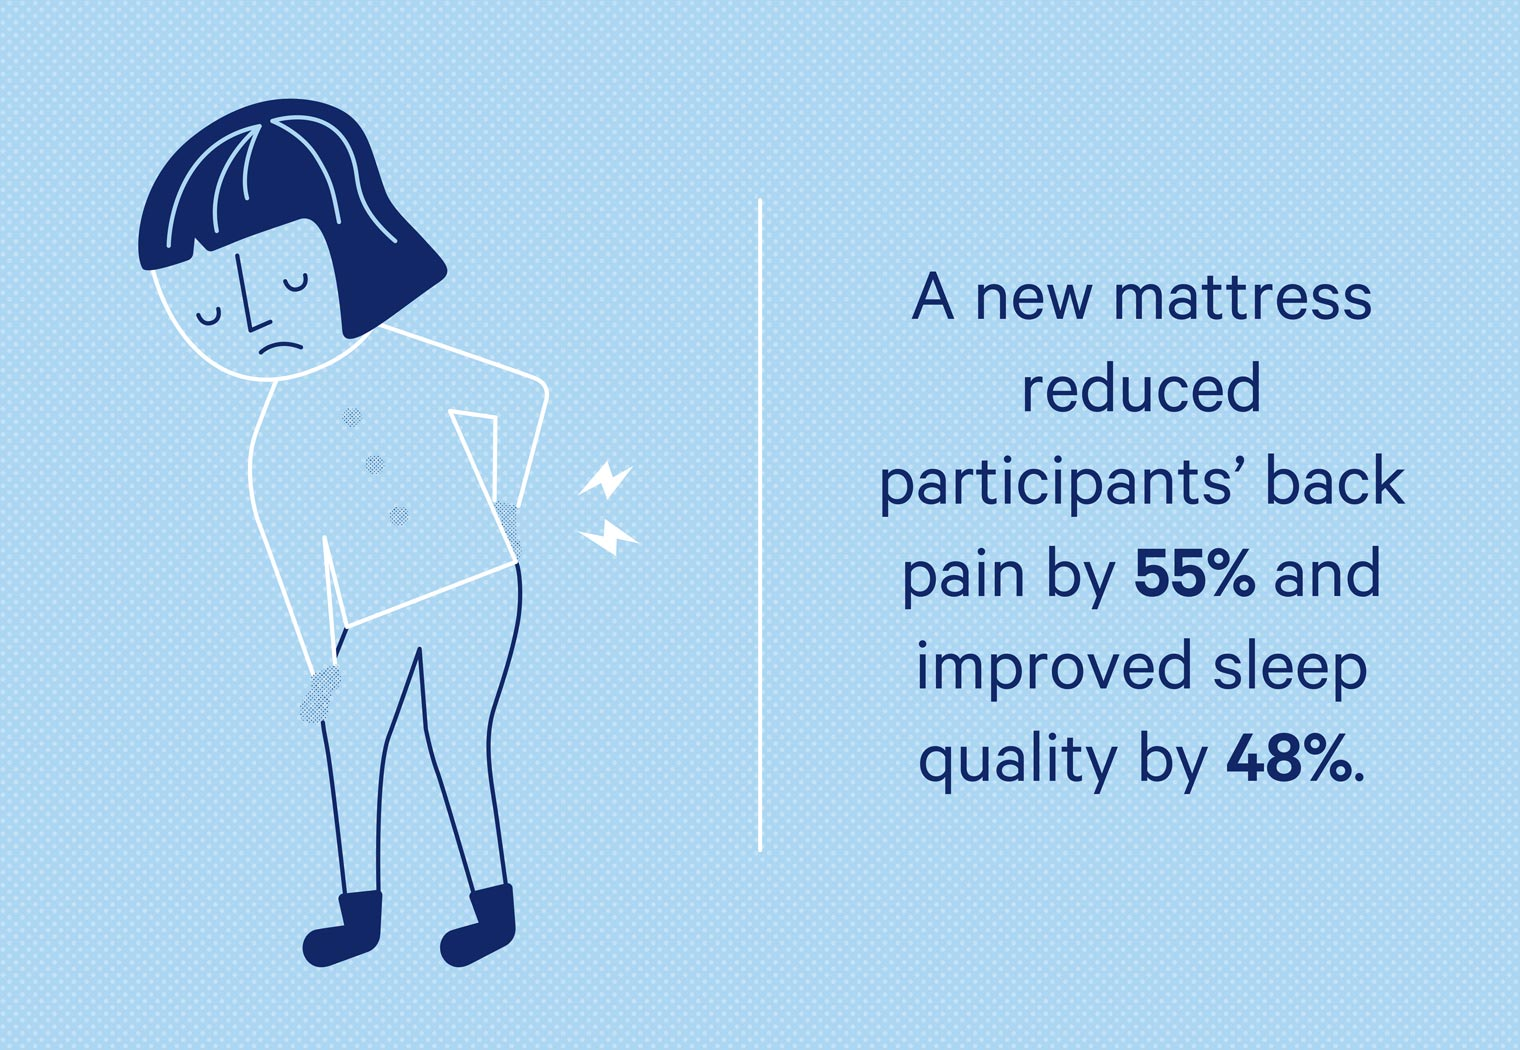 Sleeping on a new mattress can reduce back pain by 55% and improve sleep quality by 48%.